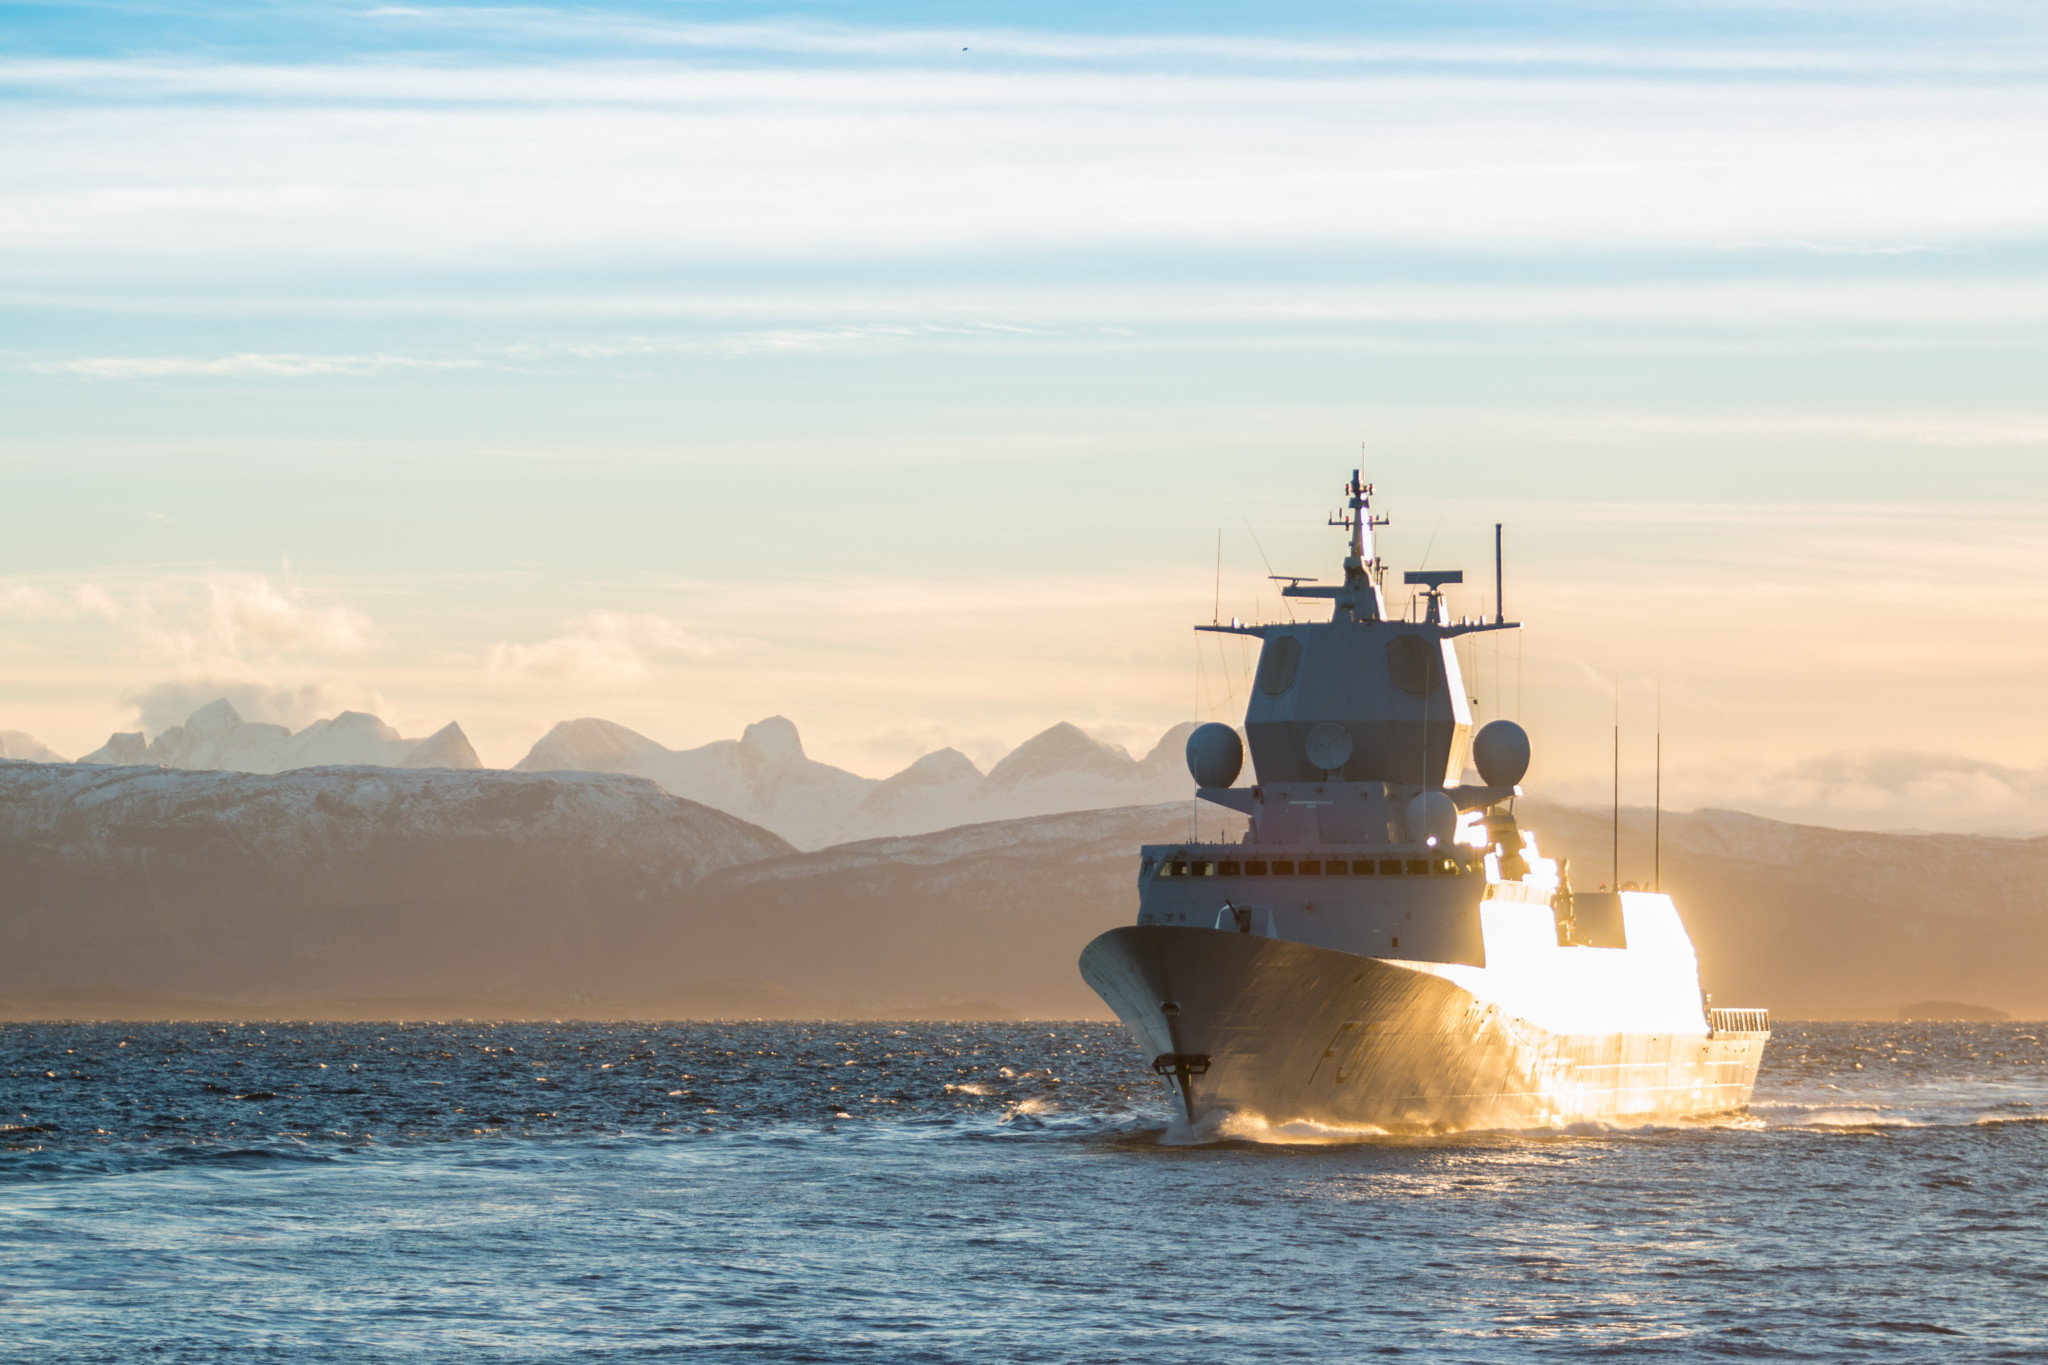 KNM Roald Amundsen i solnedgang under øvelse Flotex i Nord-Norge / KNM Roald Amundsen during exercise Flotex 2015